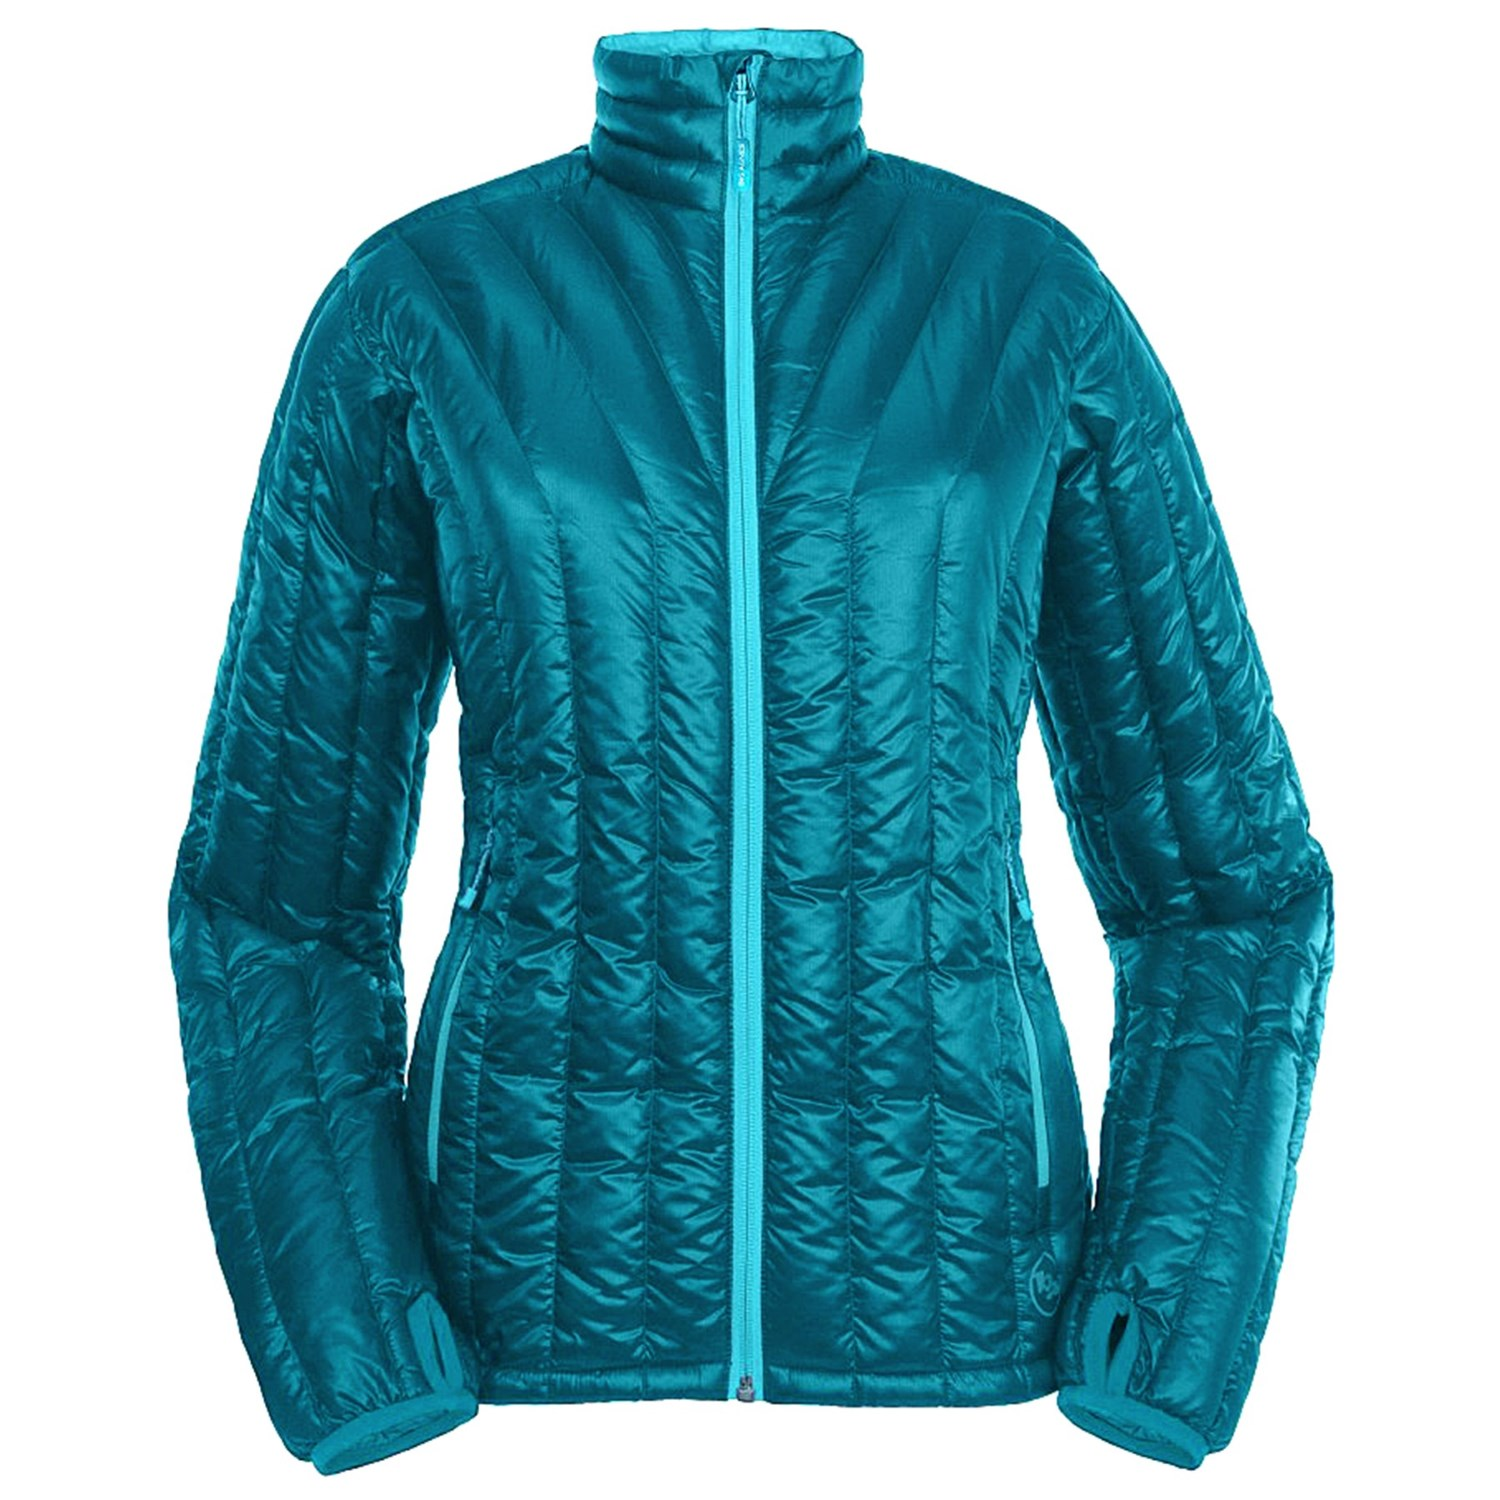 big agnes hole in the wall down jacket 700 fill power for women in teal turquoise. Black Bedroom Furniture Sets. Home Design Ideas